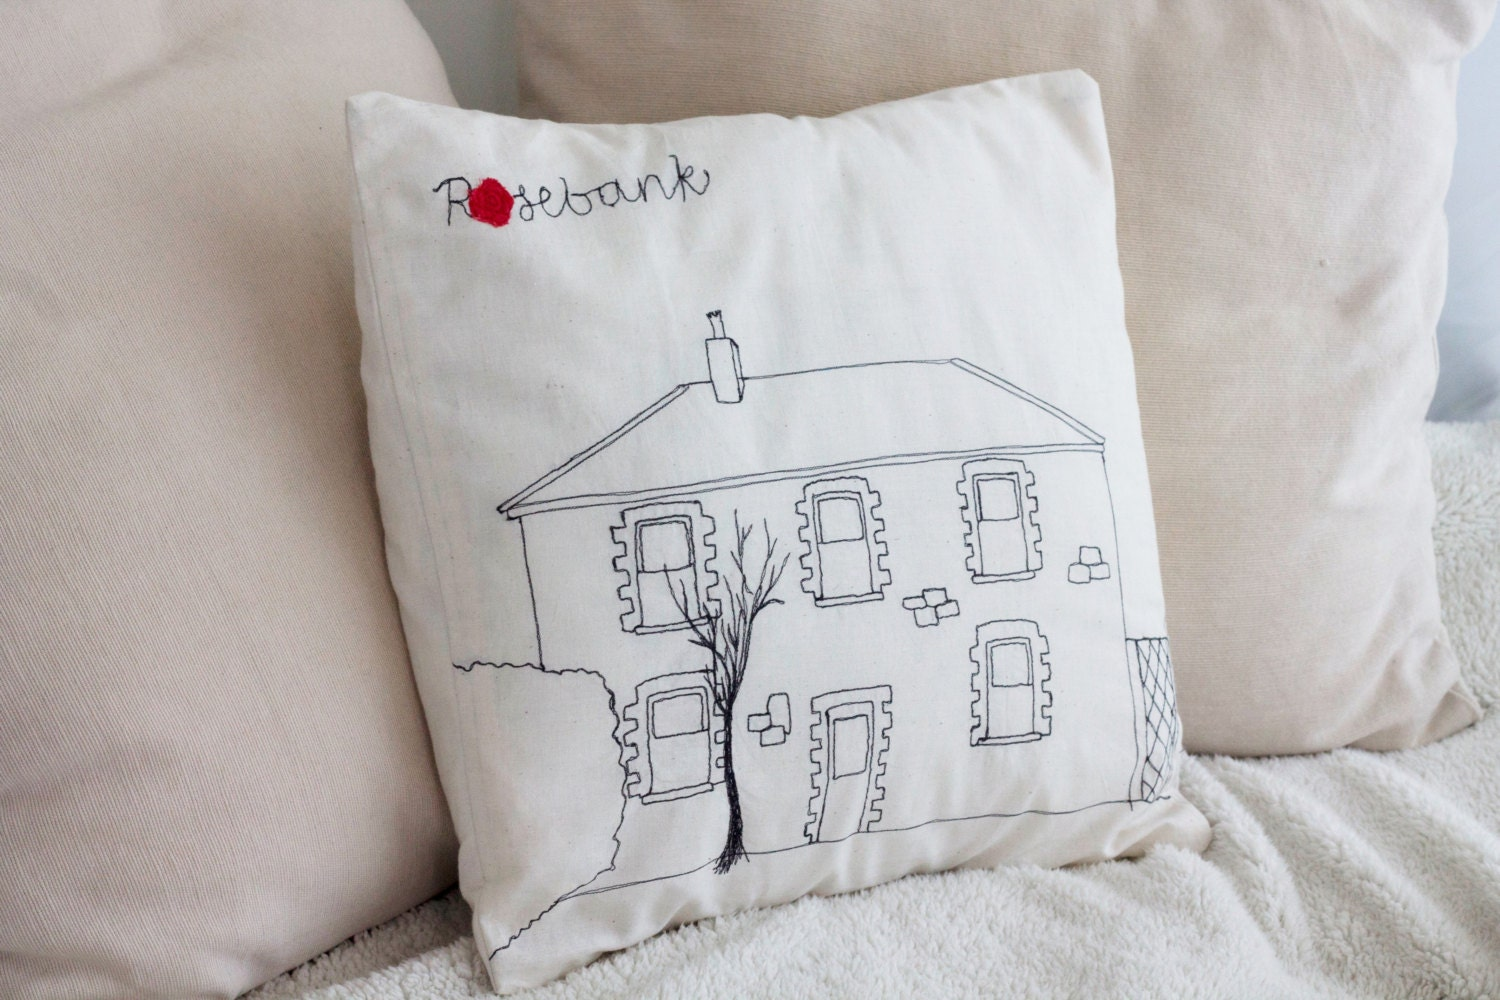 Personalized Embroidered Throw Pillows : Custom House Pillow/Throw Pillow Cover/Embroidered